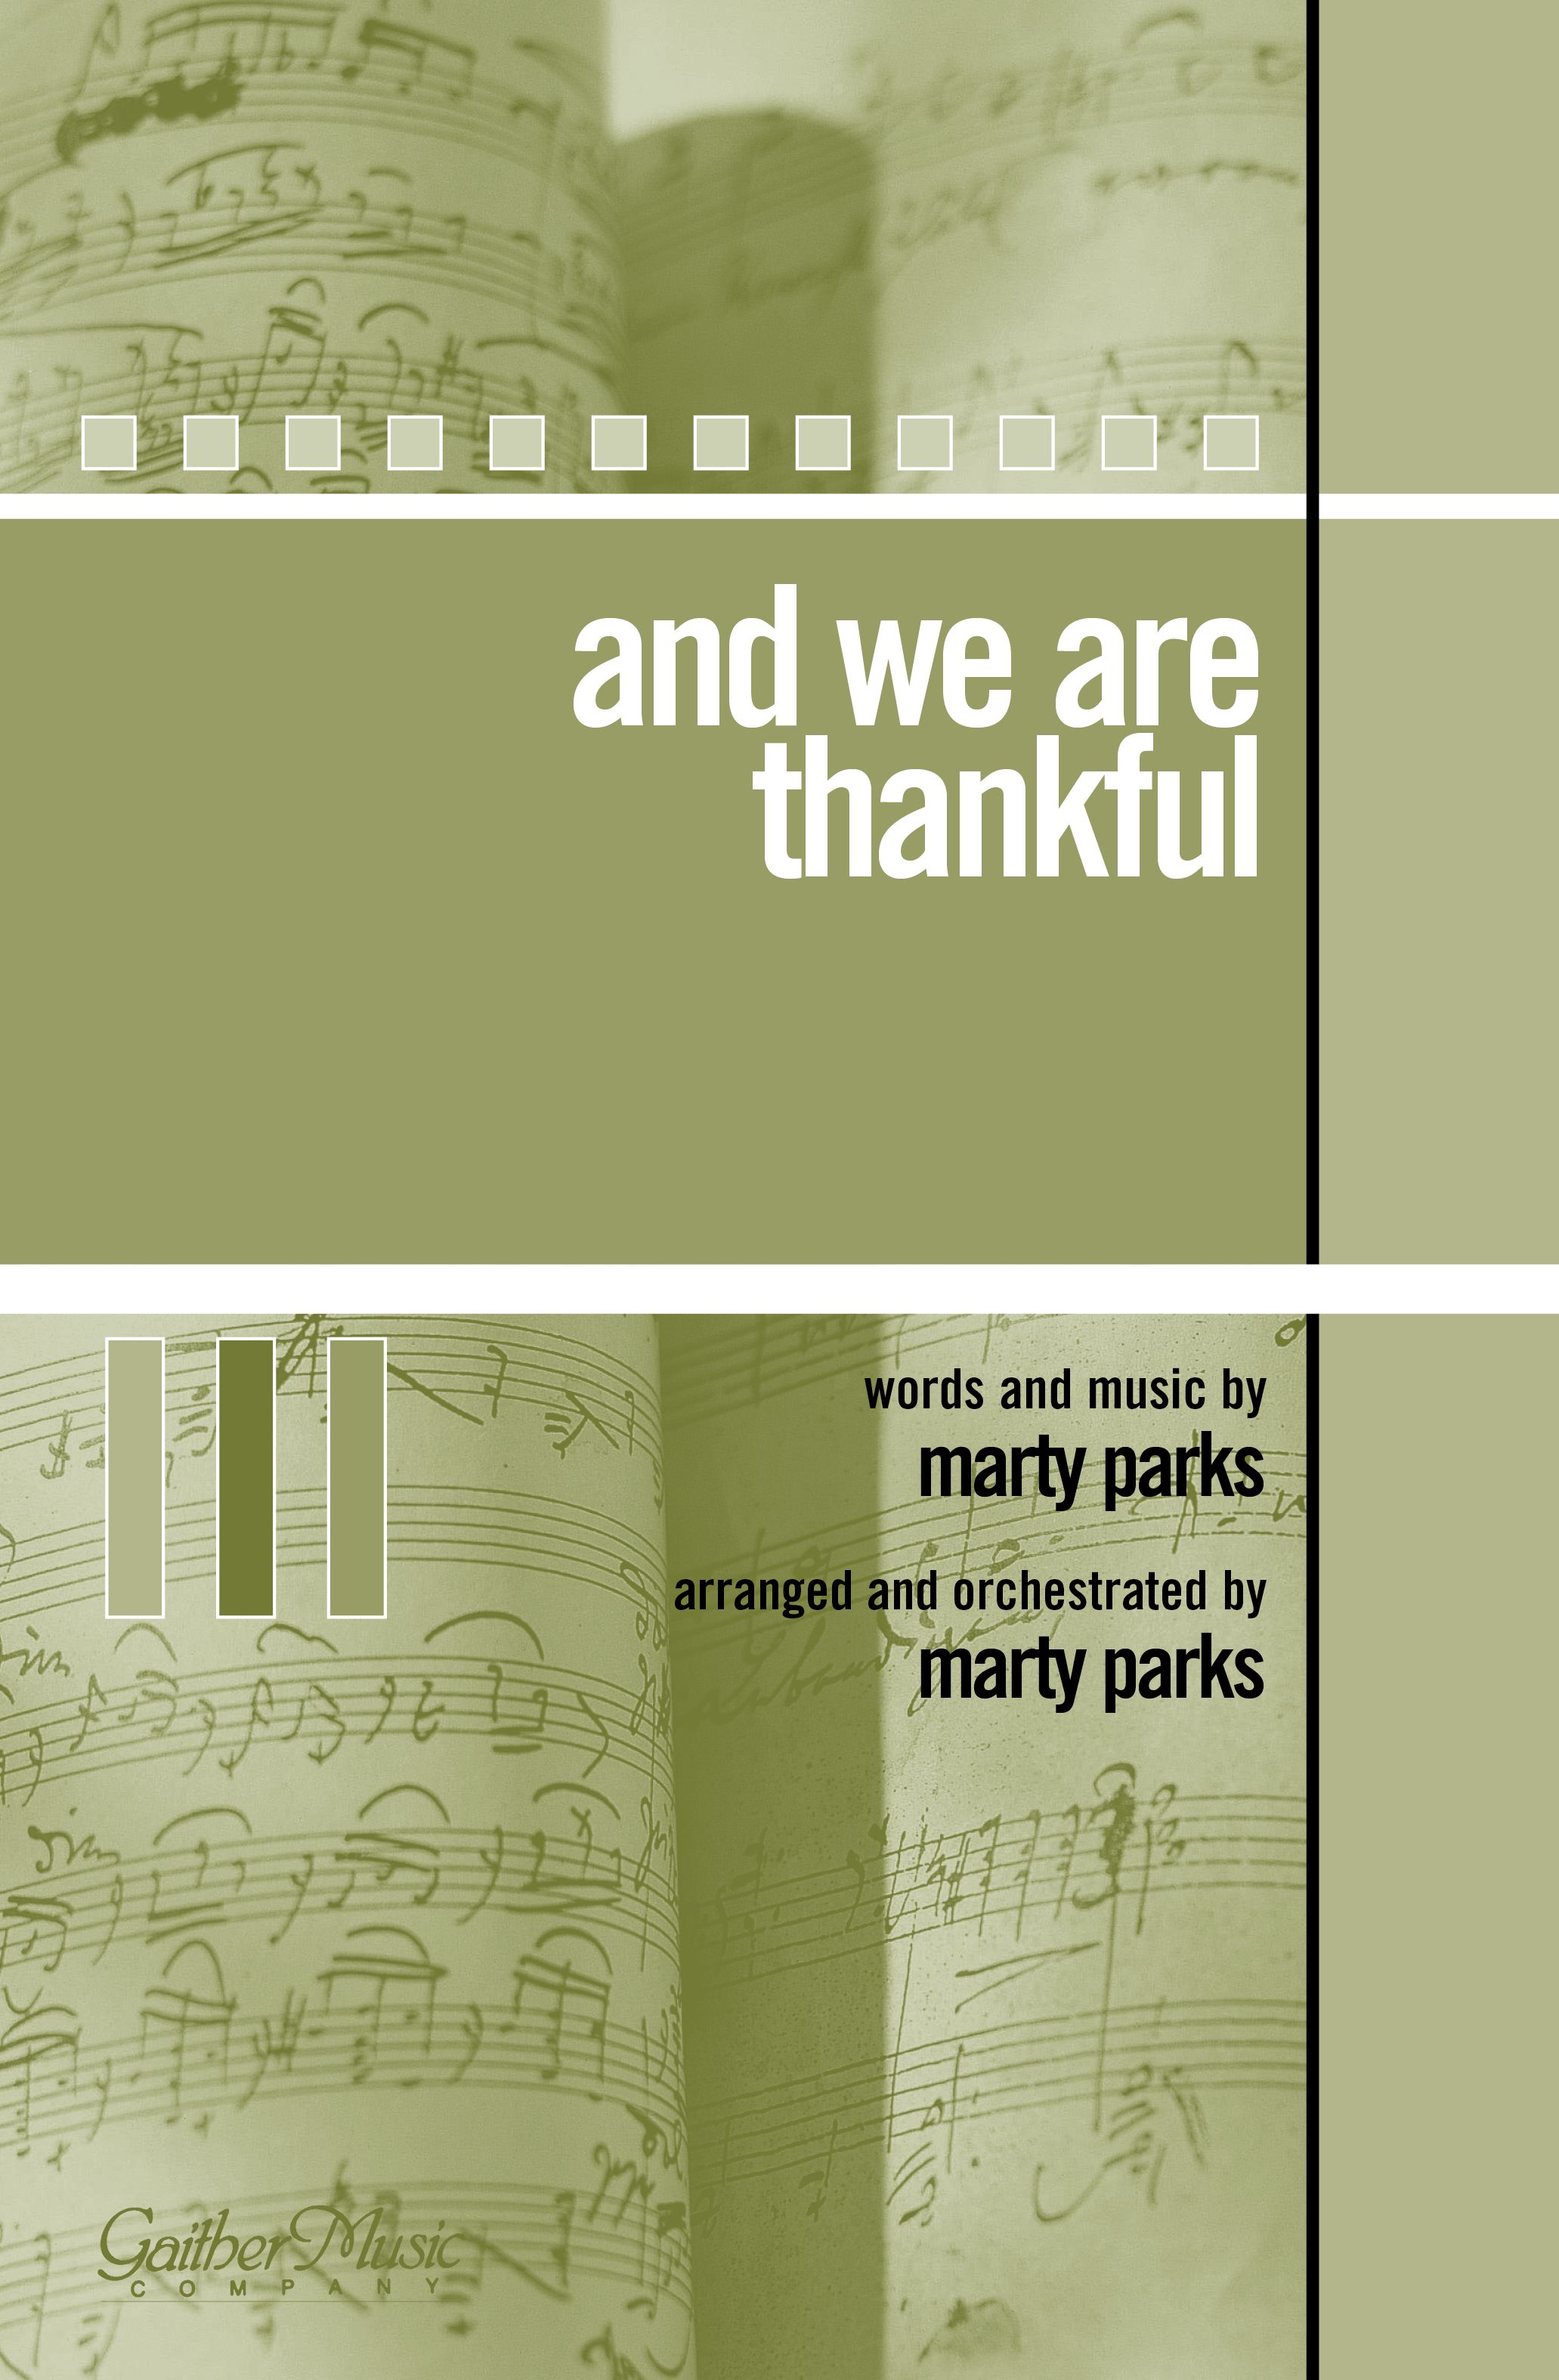 And We Are Thankful Words And Music By Marty Parks